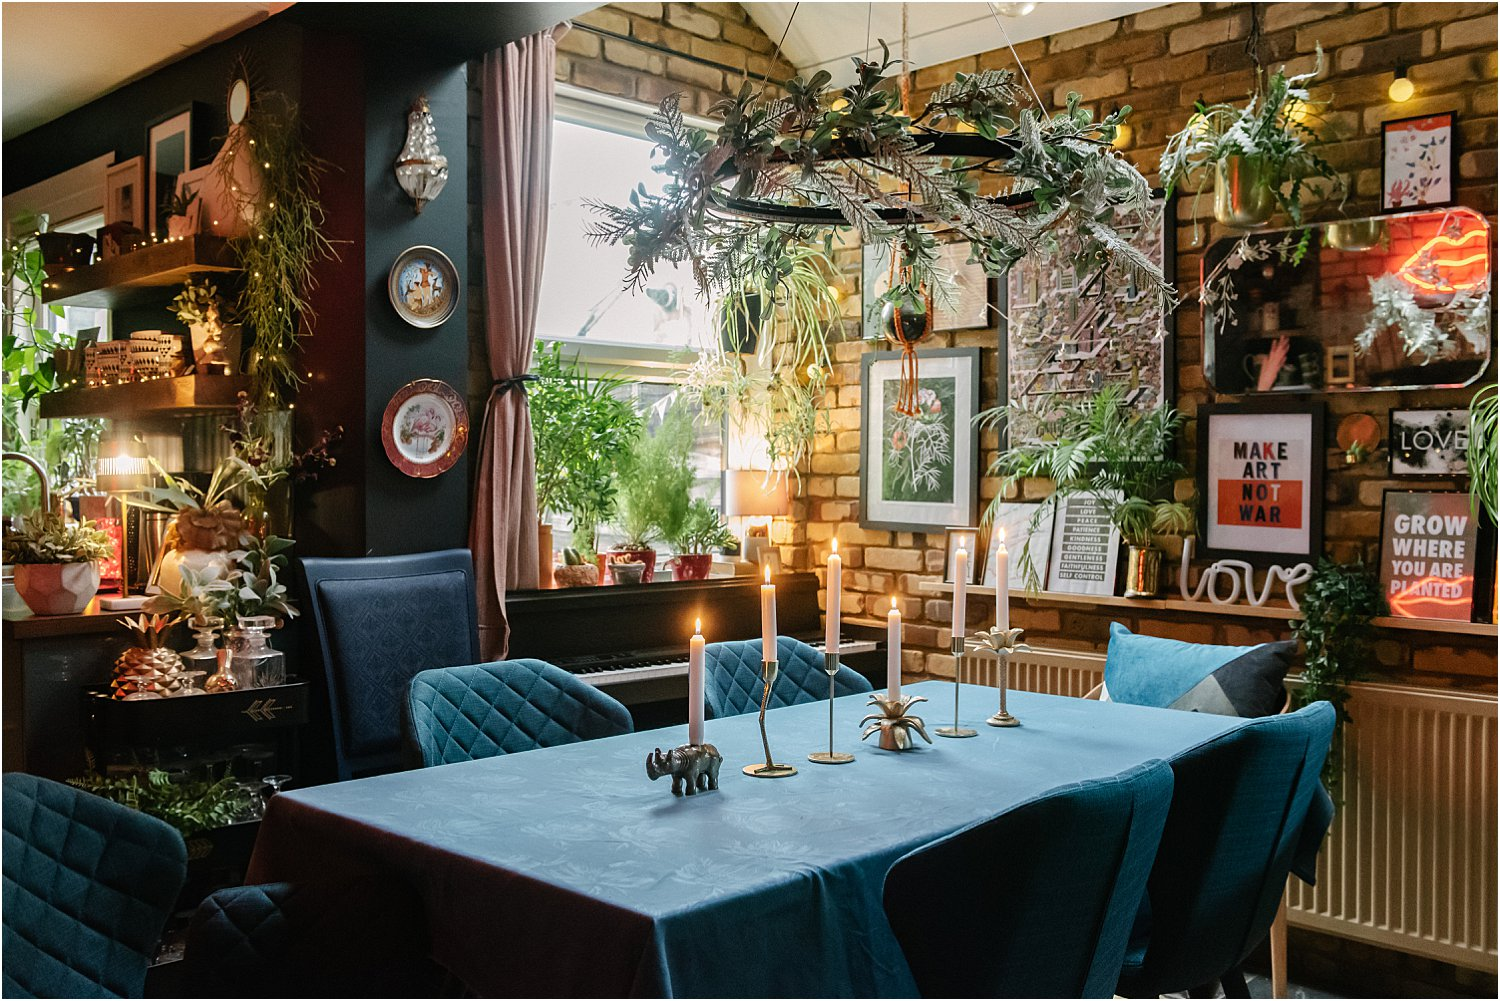 3-ways-style-Christmas-table-decorations-lily-sawyer-photo